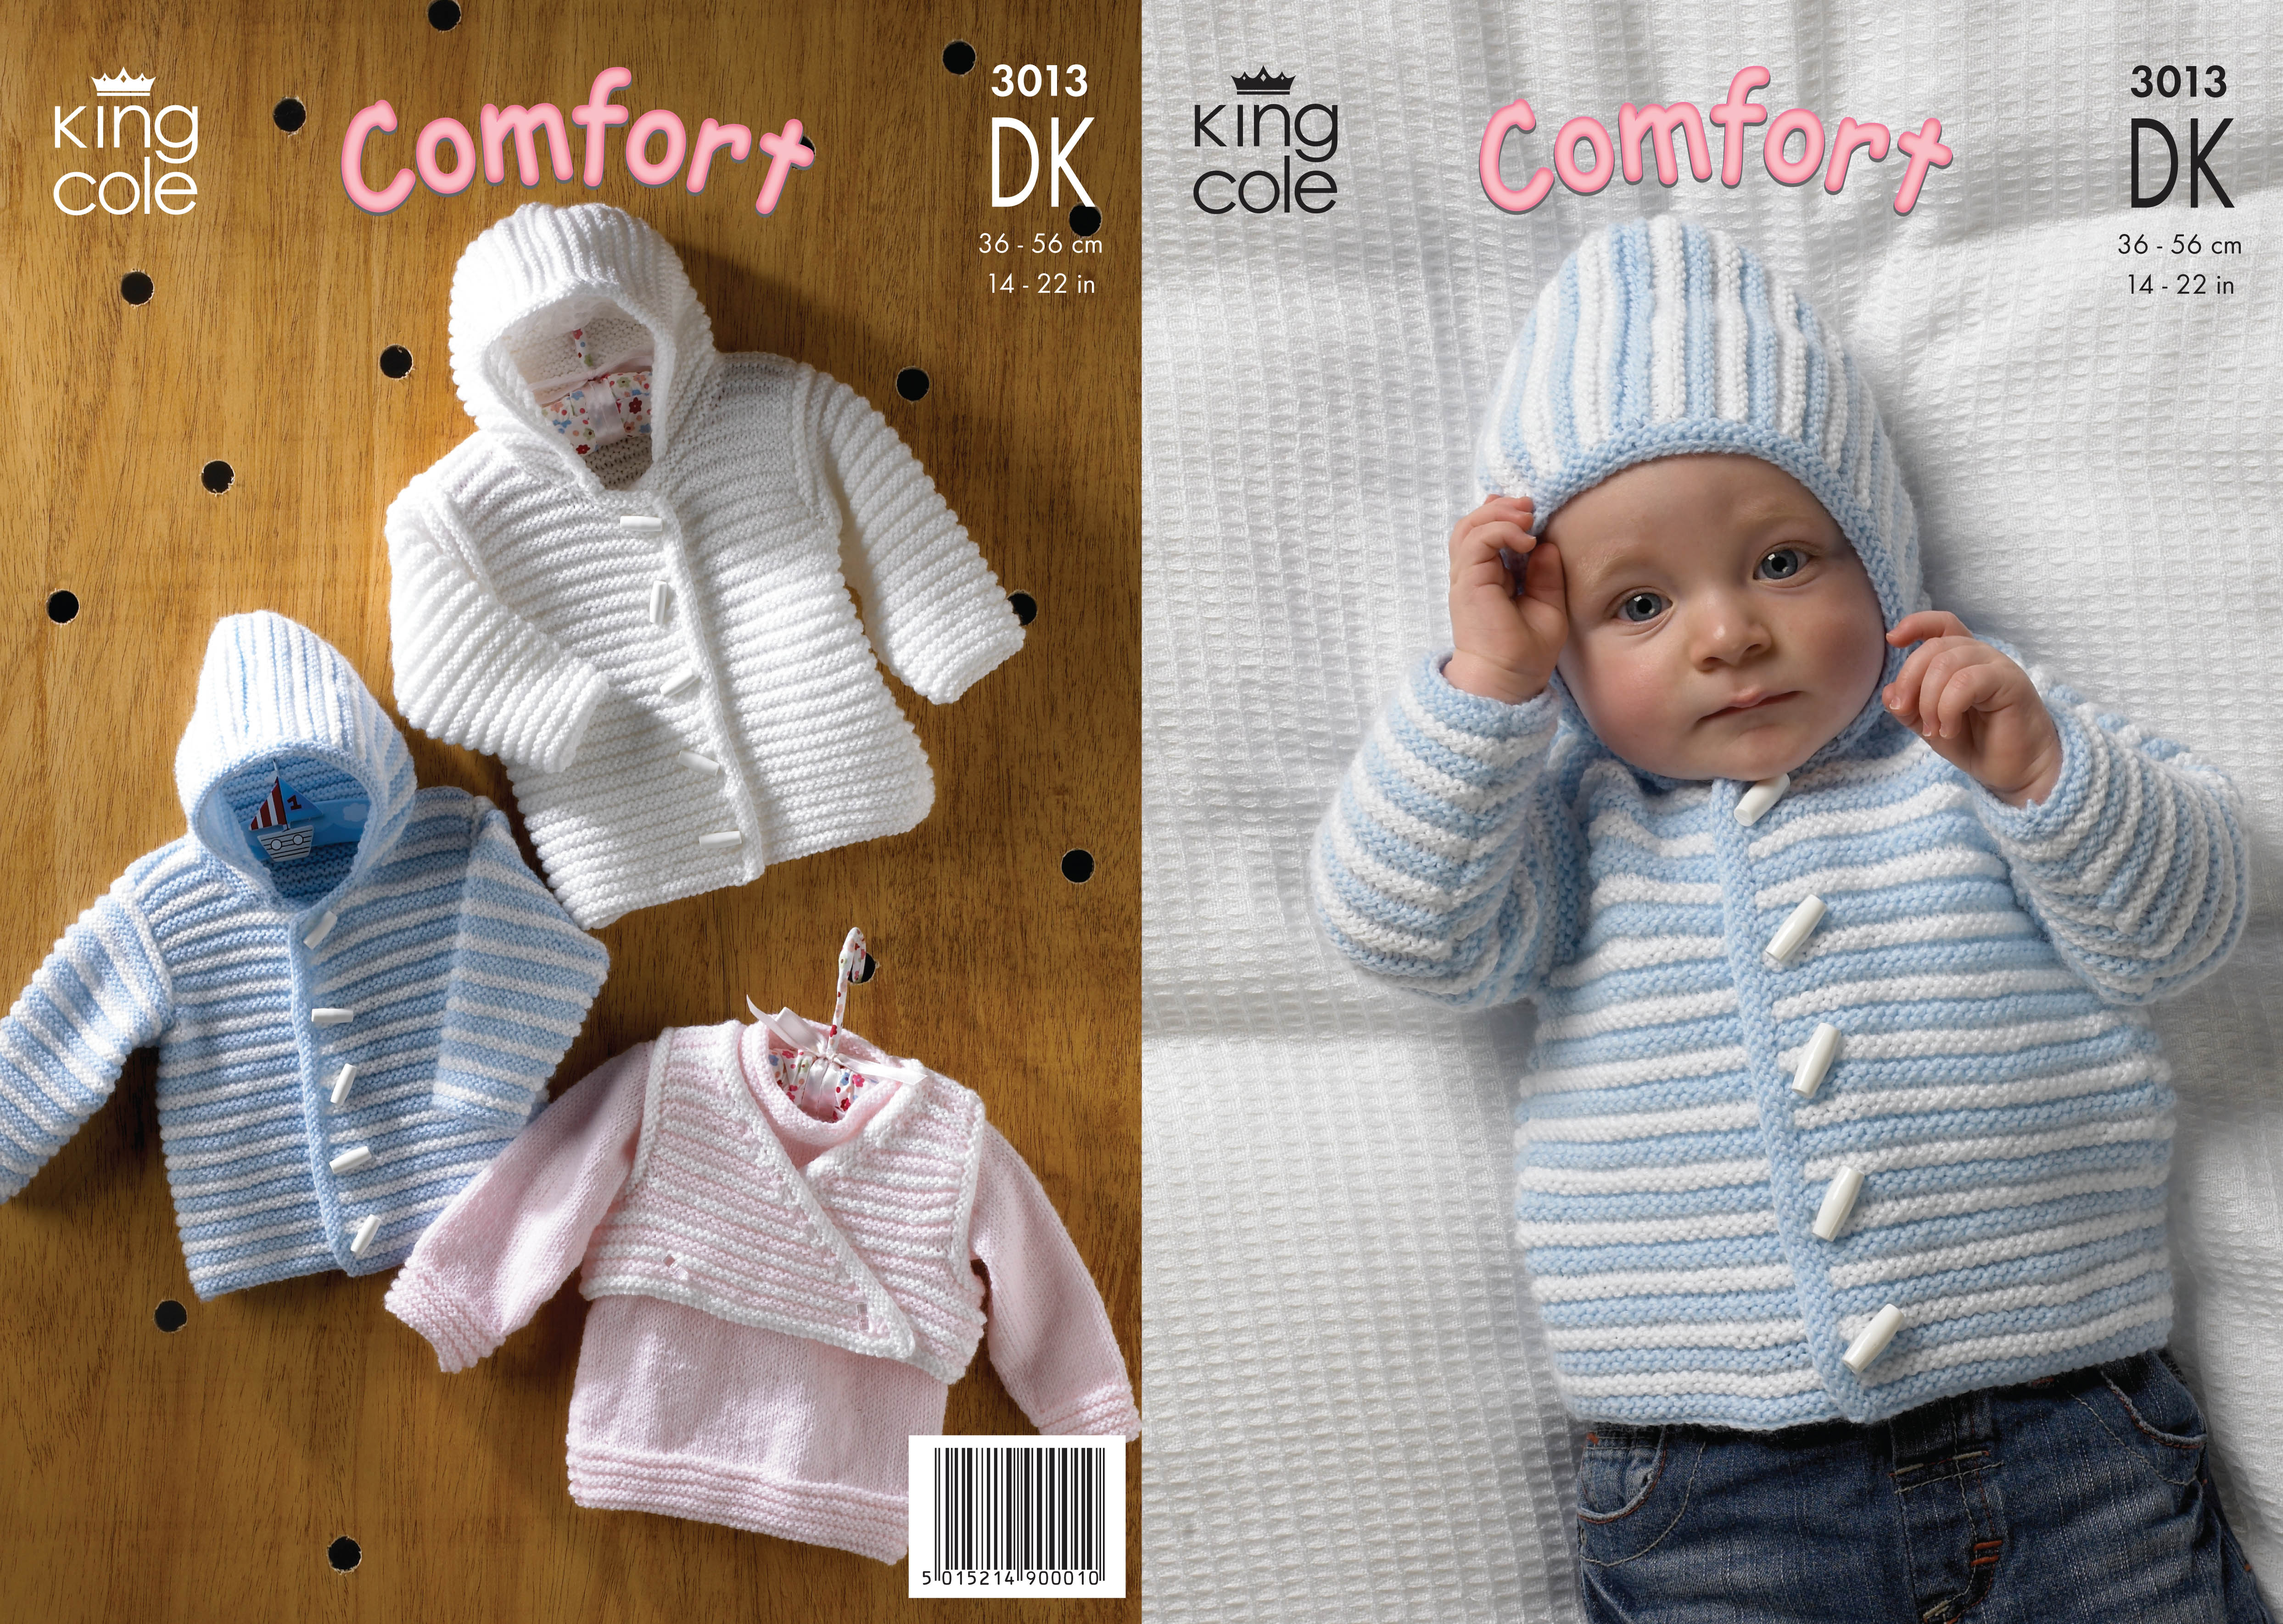 Double Knitting Baby Patterns Details About King Cole Double Knitting Dk Pattern Ba Sweater Hooded Jacket Body Warmer 3013